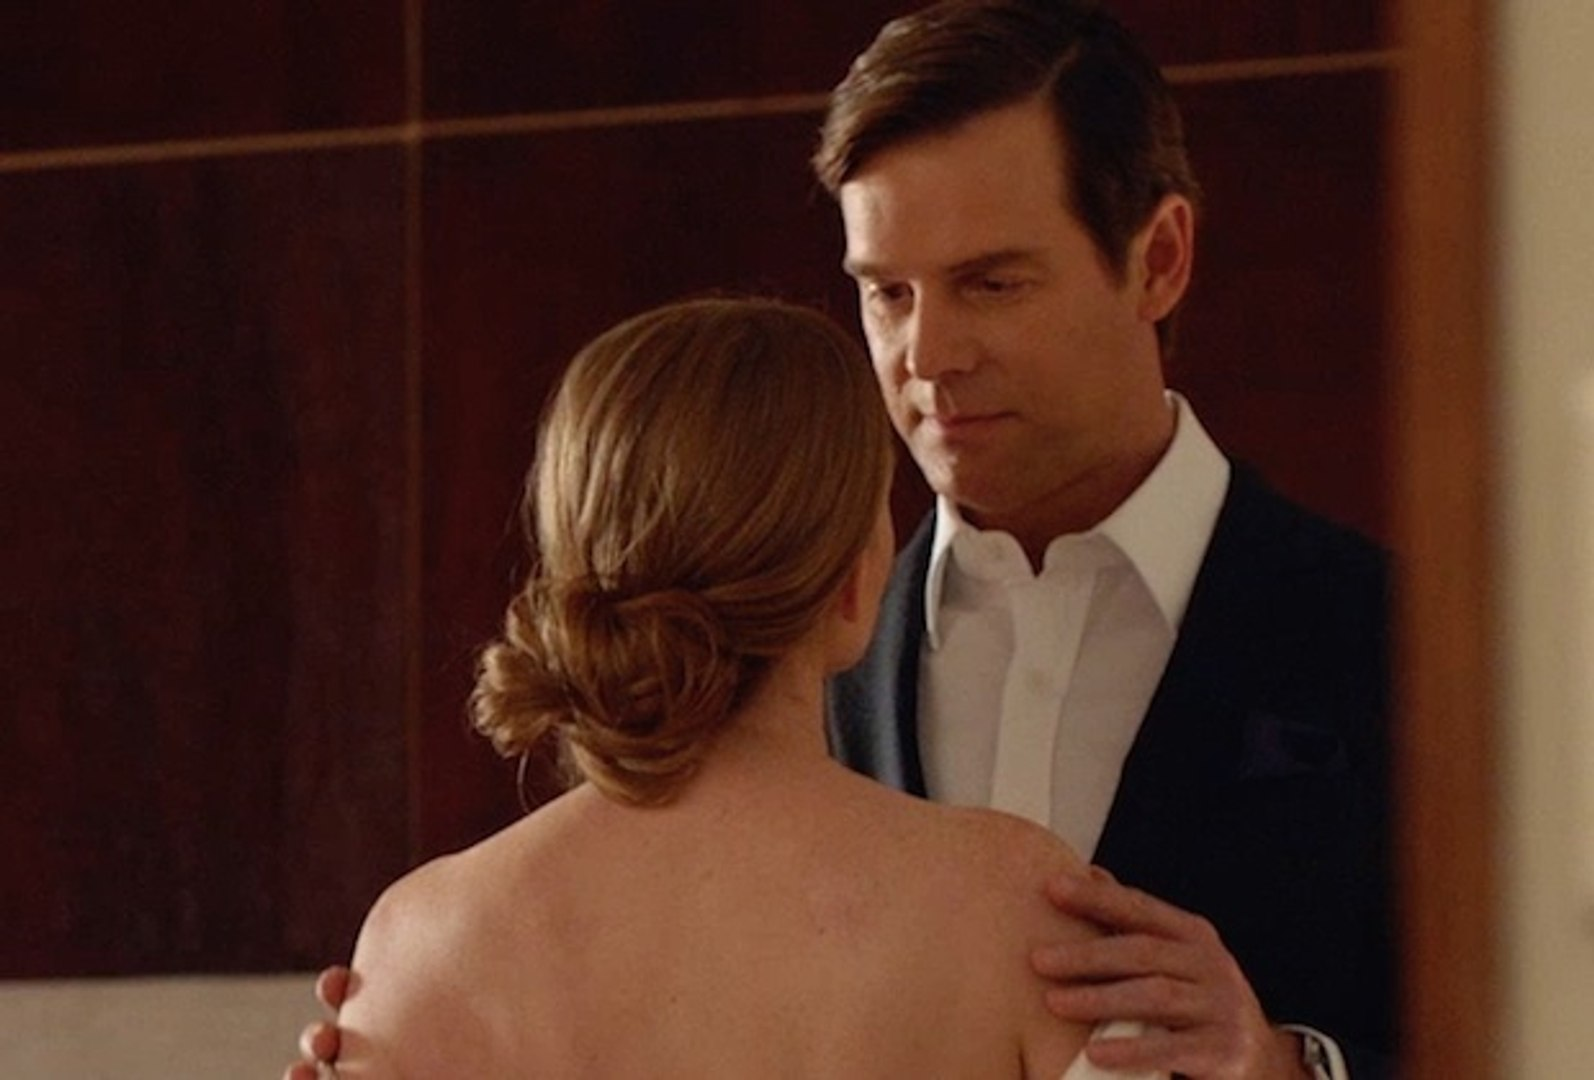 Watch ONLINE//Download : The Catch Season 2 Episode 1 Catch~UP